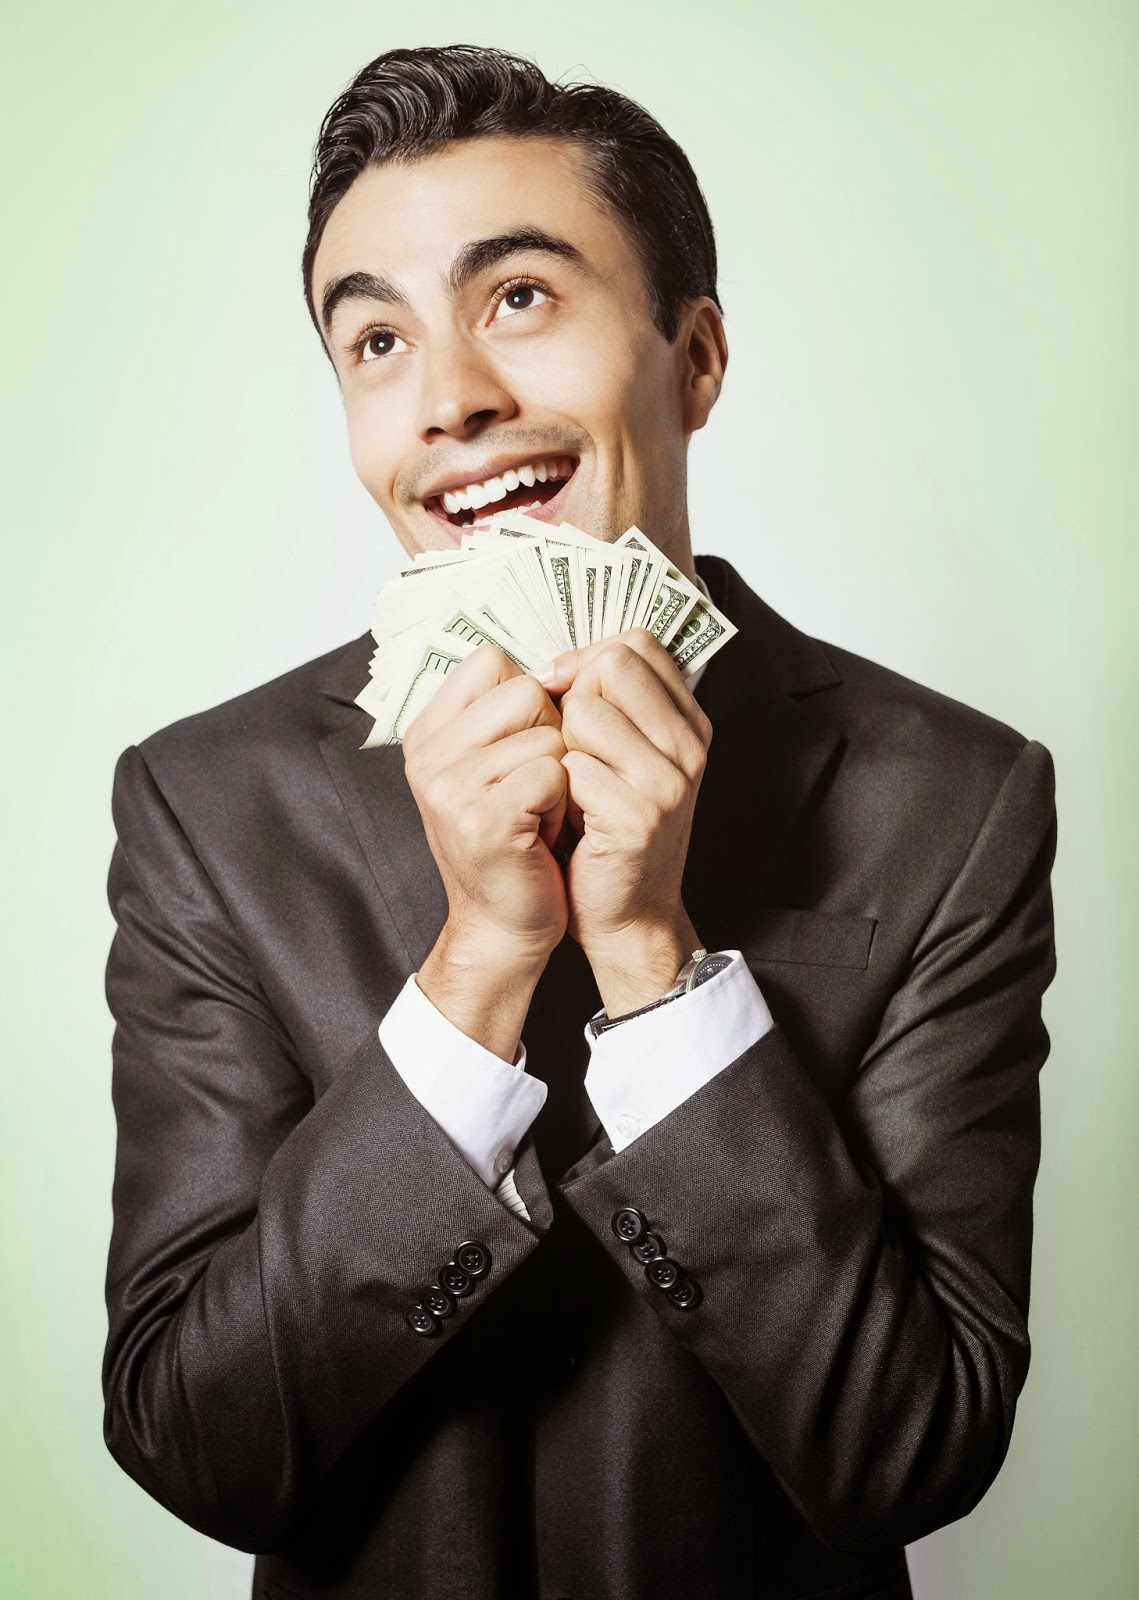 man in business suit holding fanned-out cash